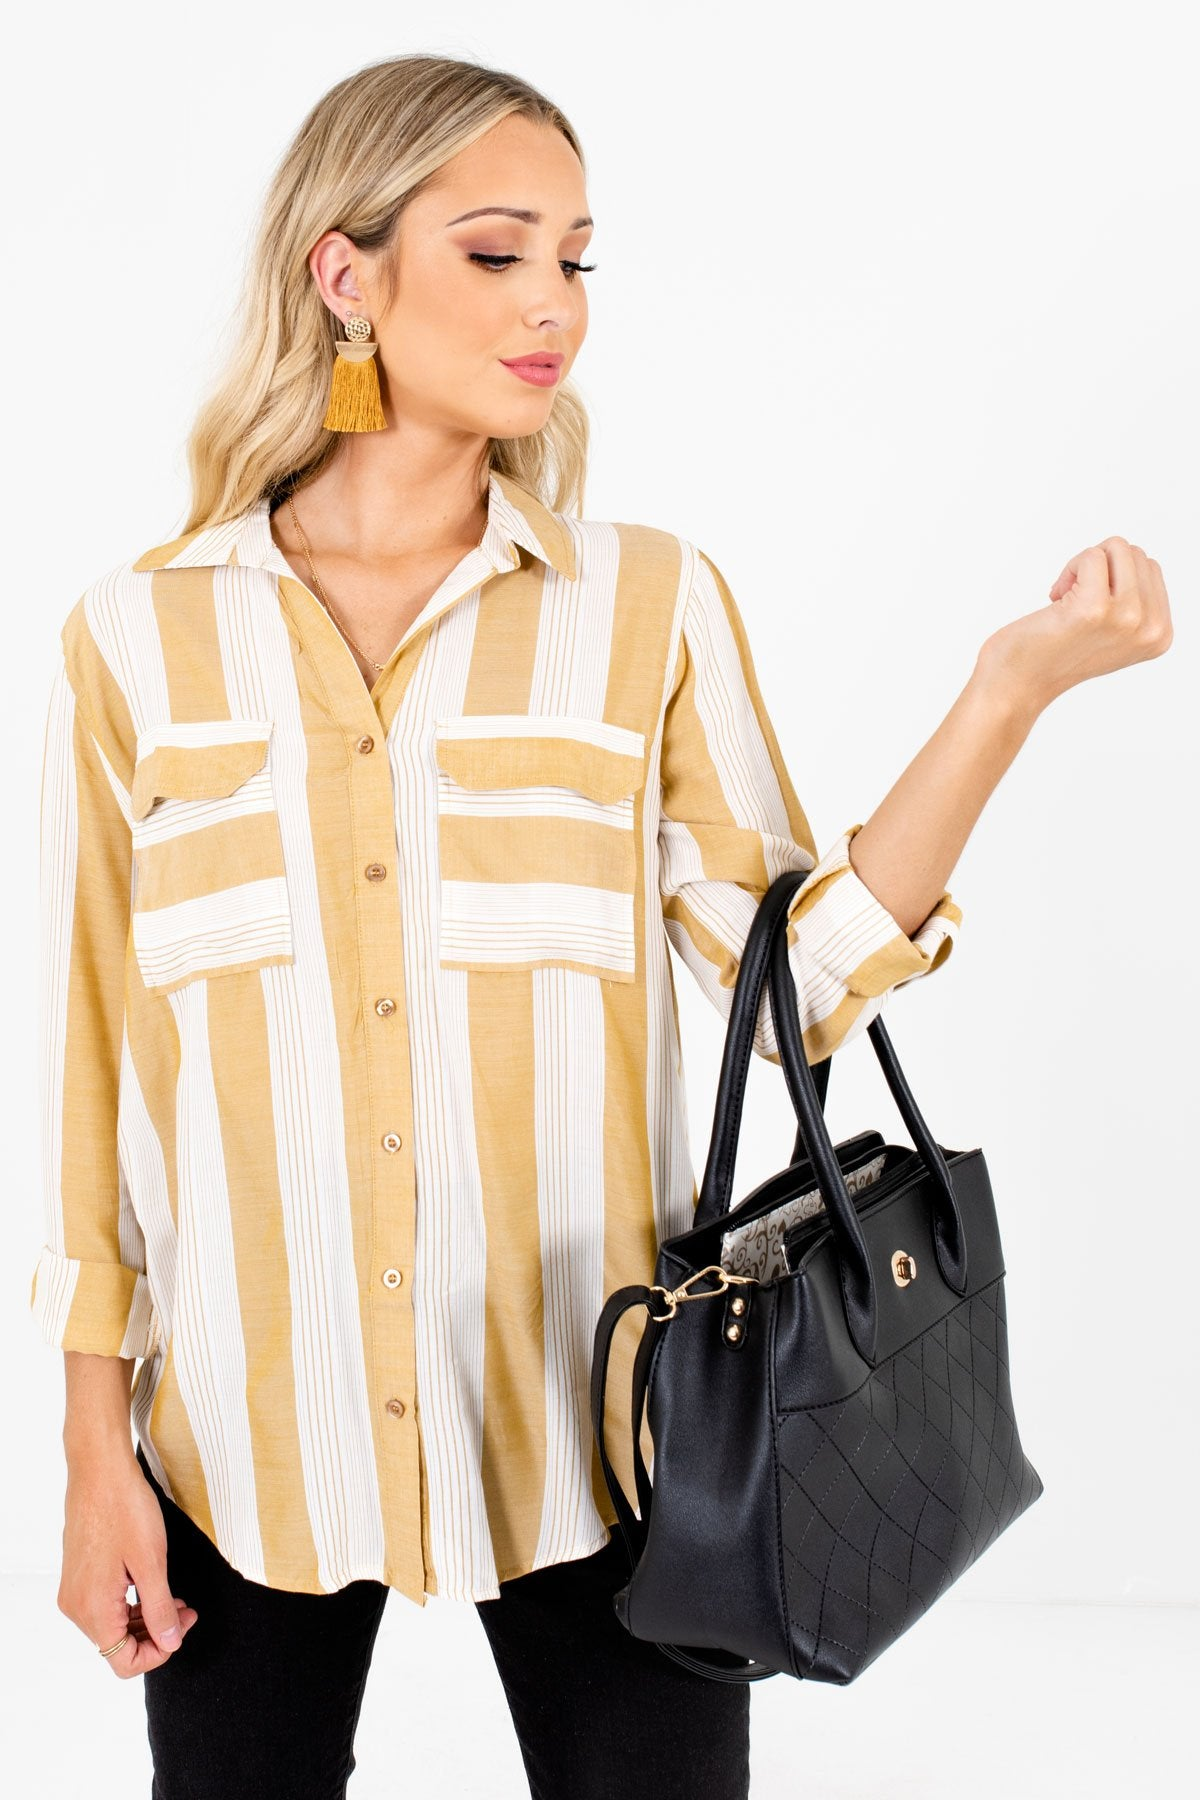 Yellow and White Stripe Patterned Boutique Shirts for Women